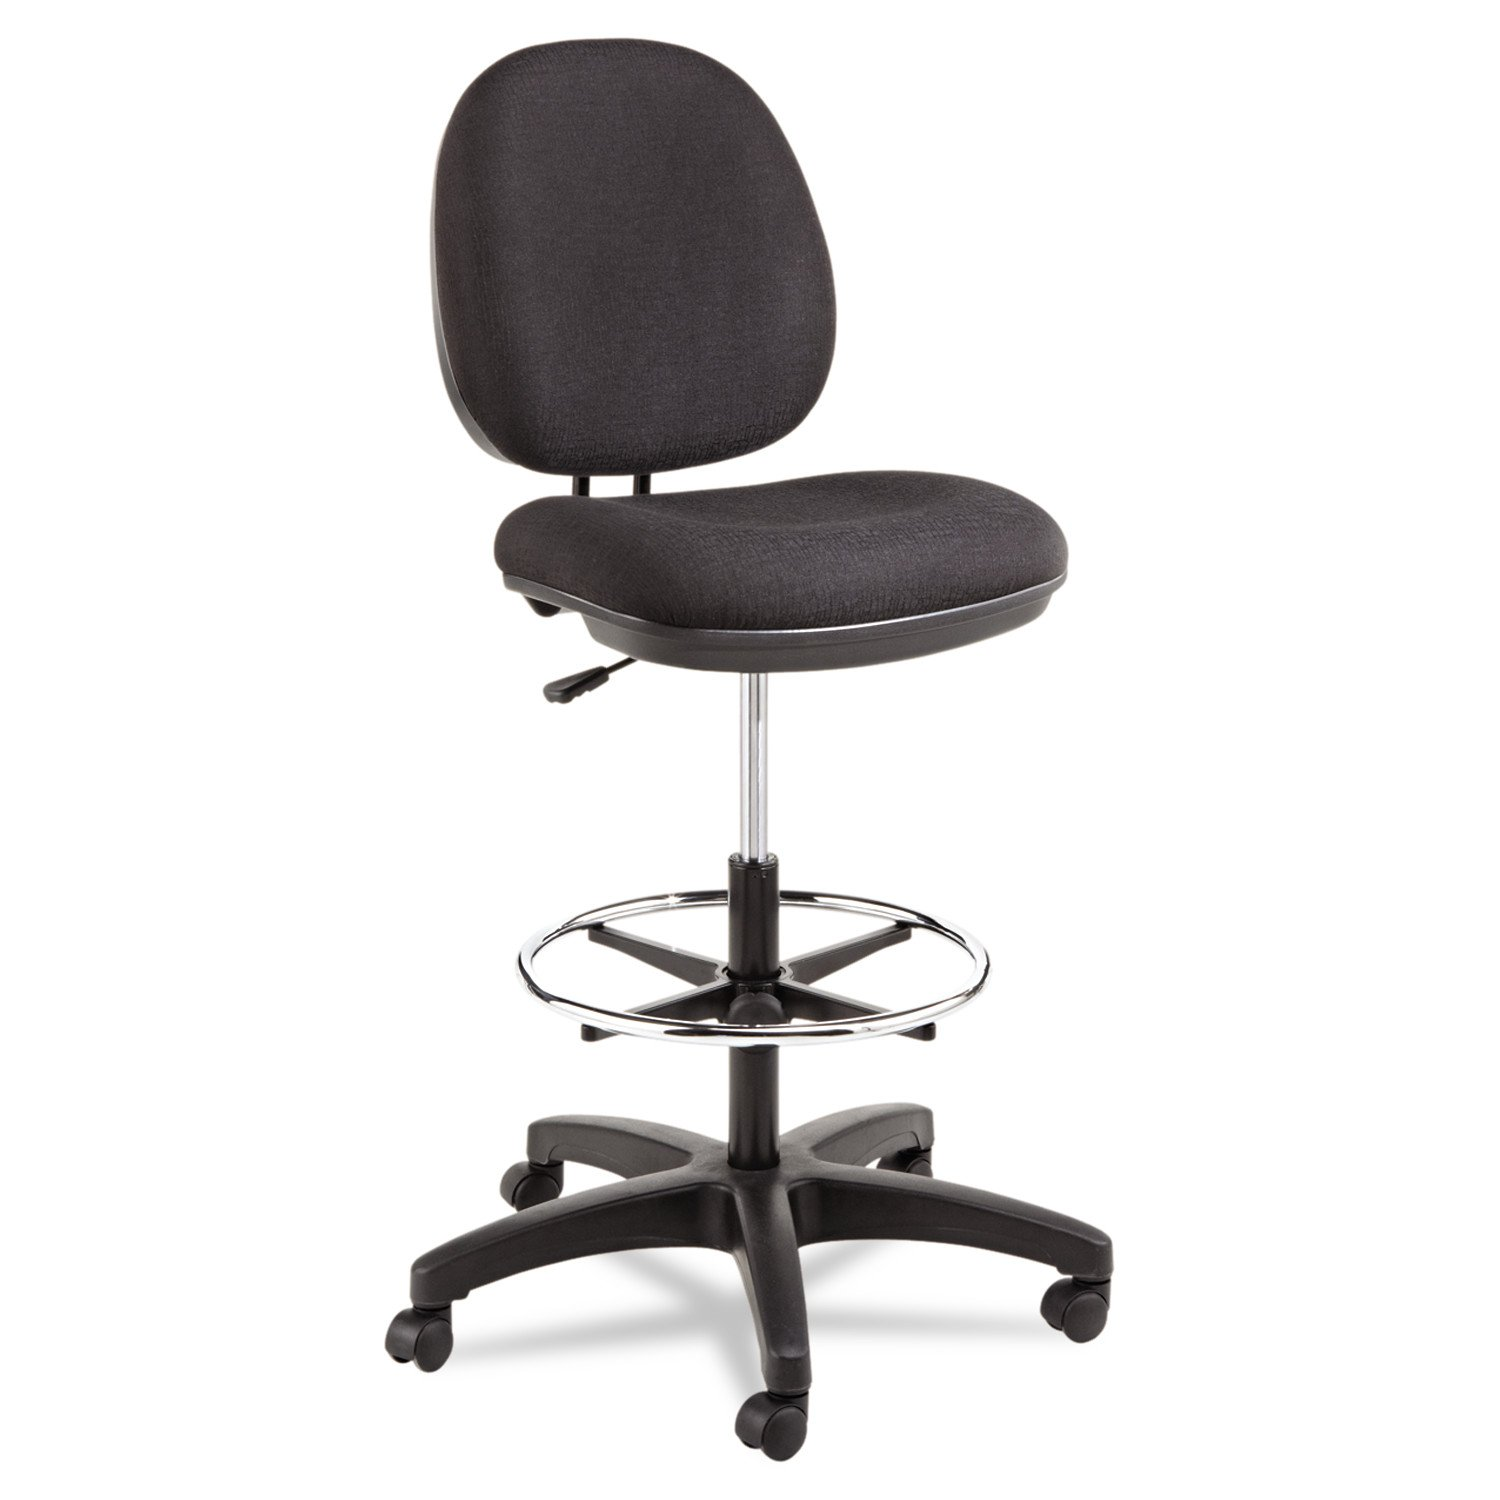 Alera Interval Series Swivel Task Stool, 100% Acrylic, Black by Alera